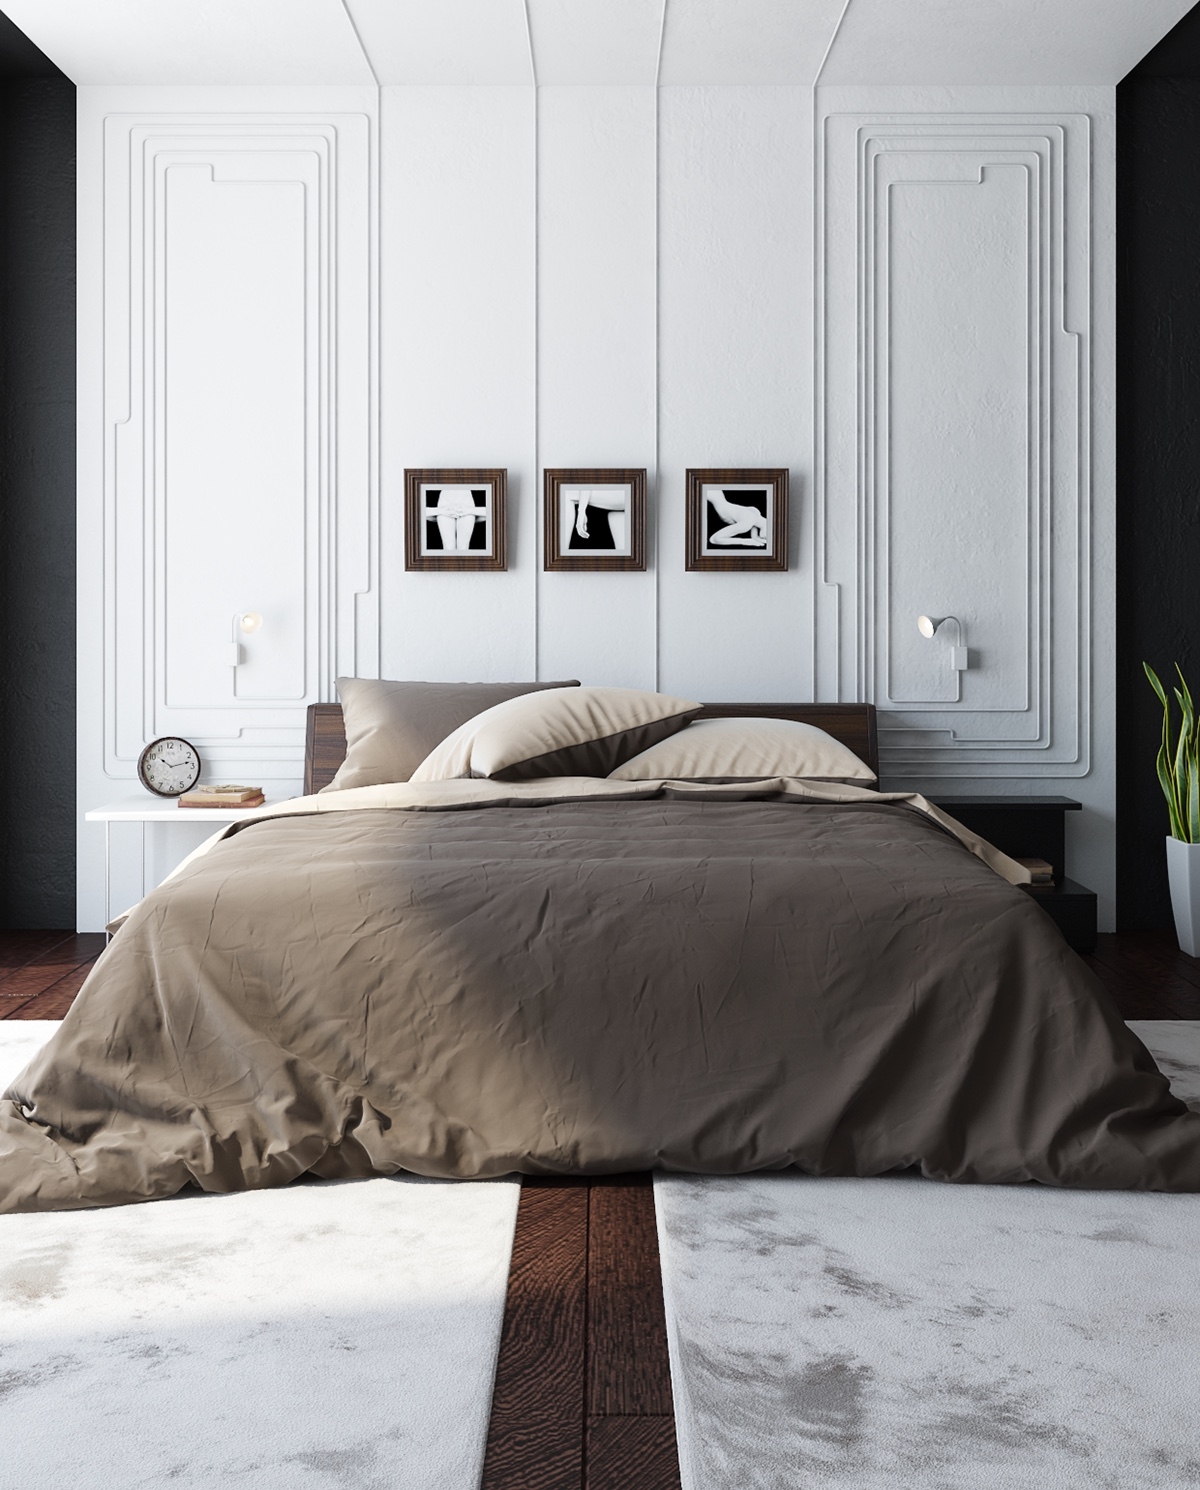 Cheeky elements can be hidden in less-bold colouring. Semi-Georgian white panelling holds a triptych series sexual in nature, while similarly-hued bedding introduces the serious.